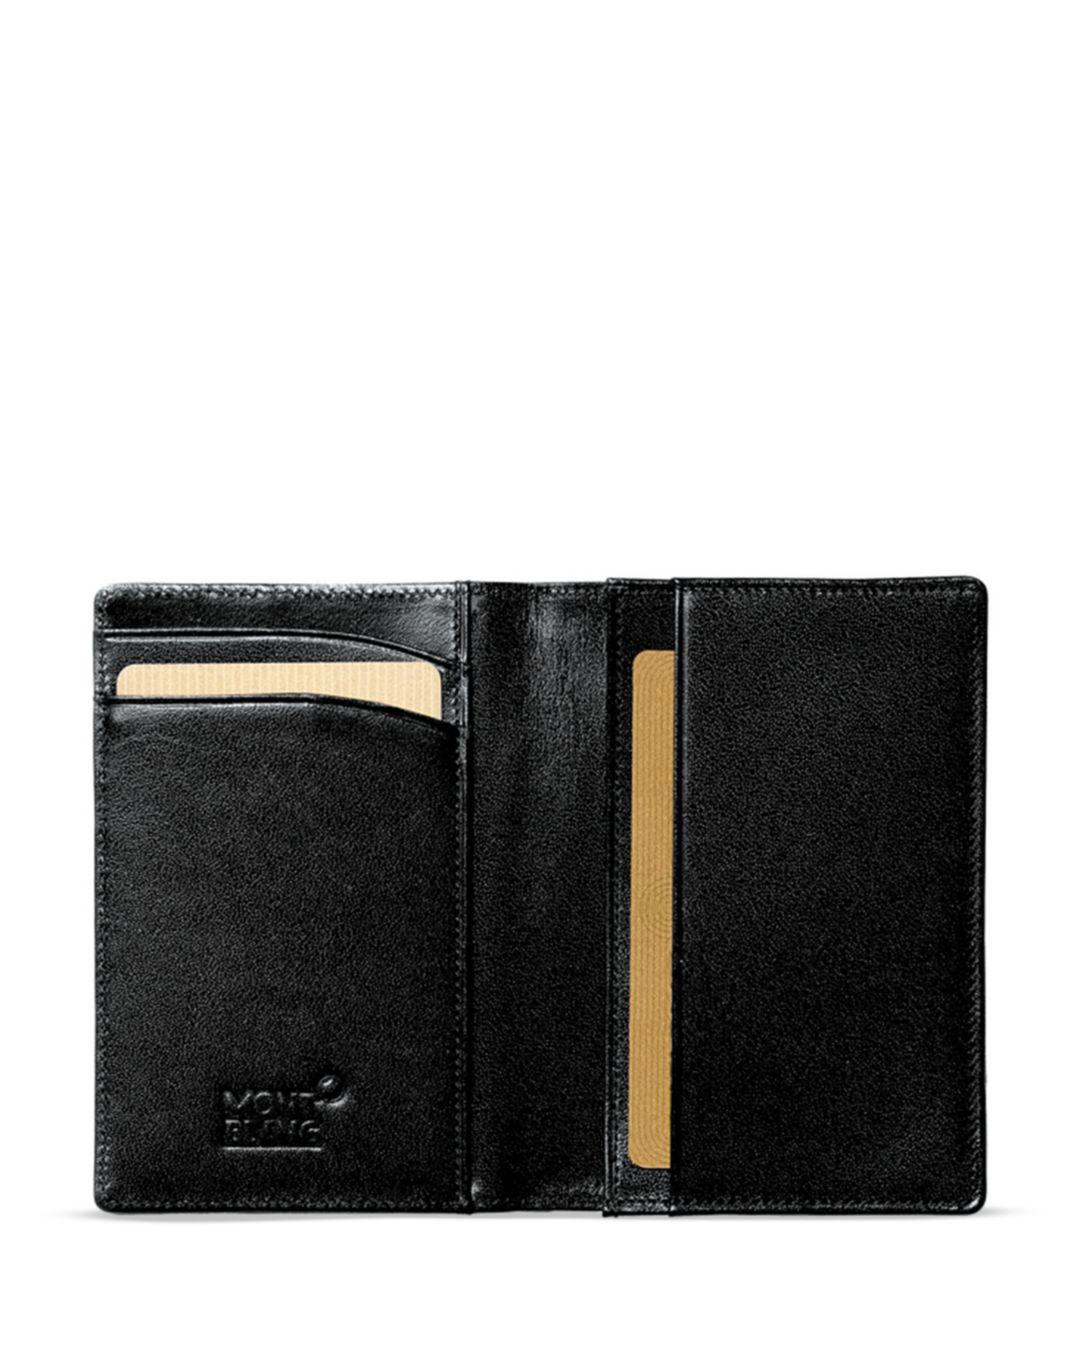 6f6fb91a72987 Lyst - Montblanc Leather Business Card Holder in Black for Men - Save 28%